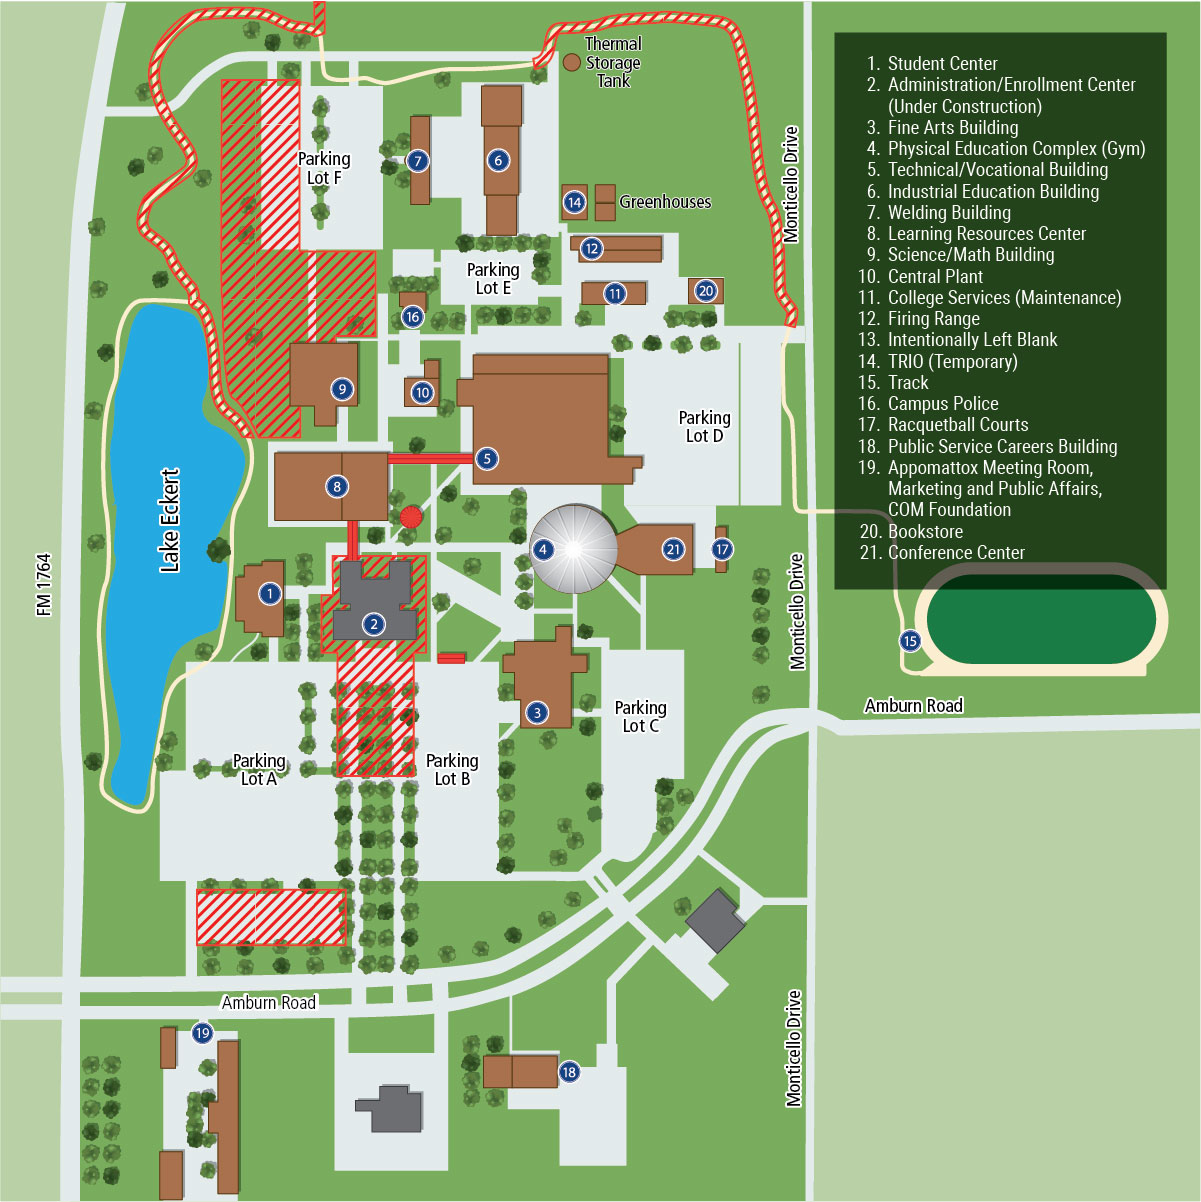 College of the Mainland campus map image